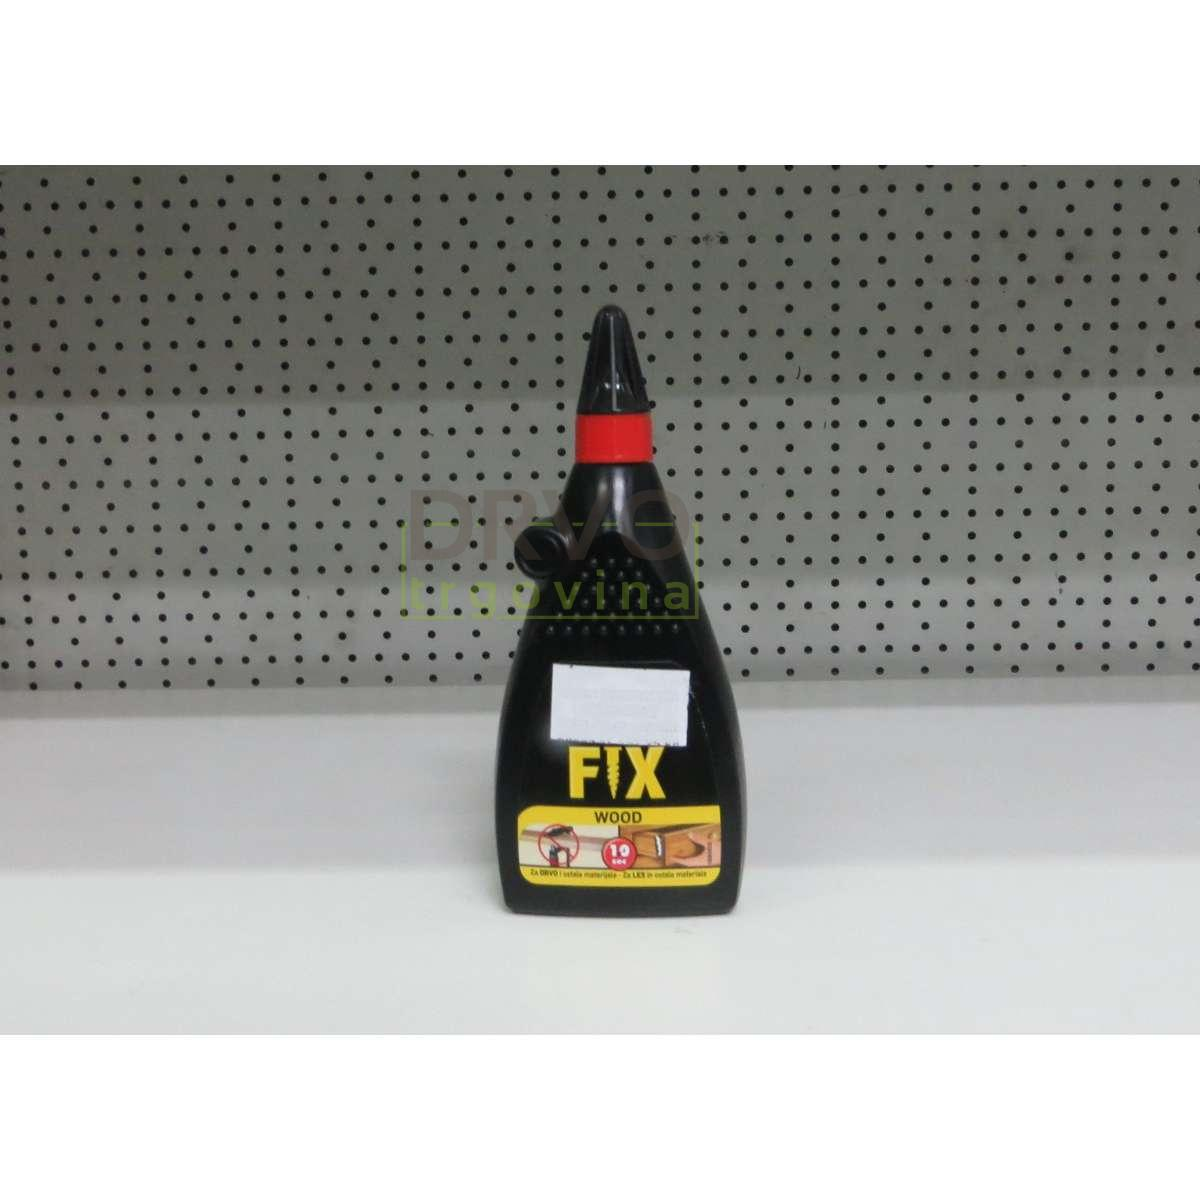 PATTEX FIX WOOD 200